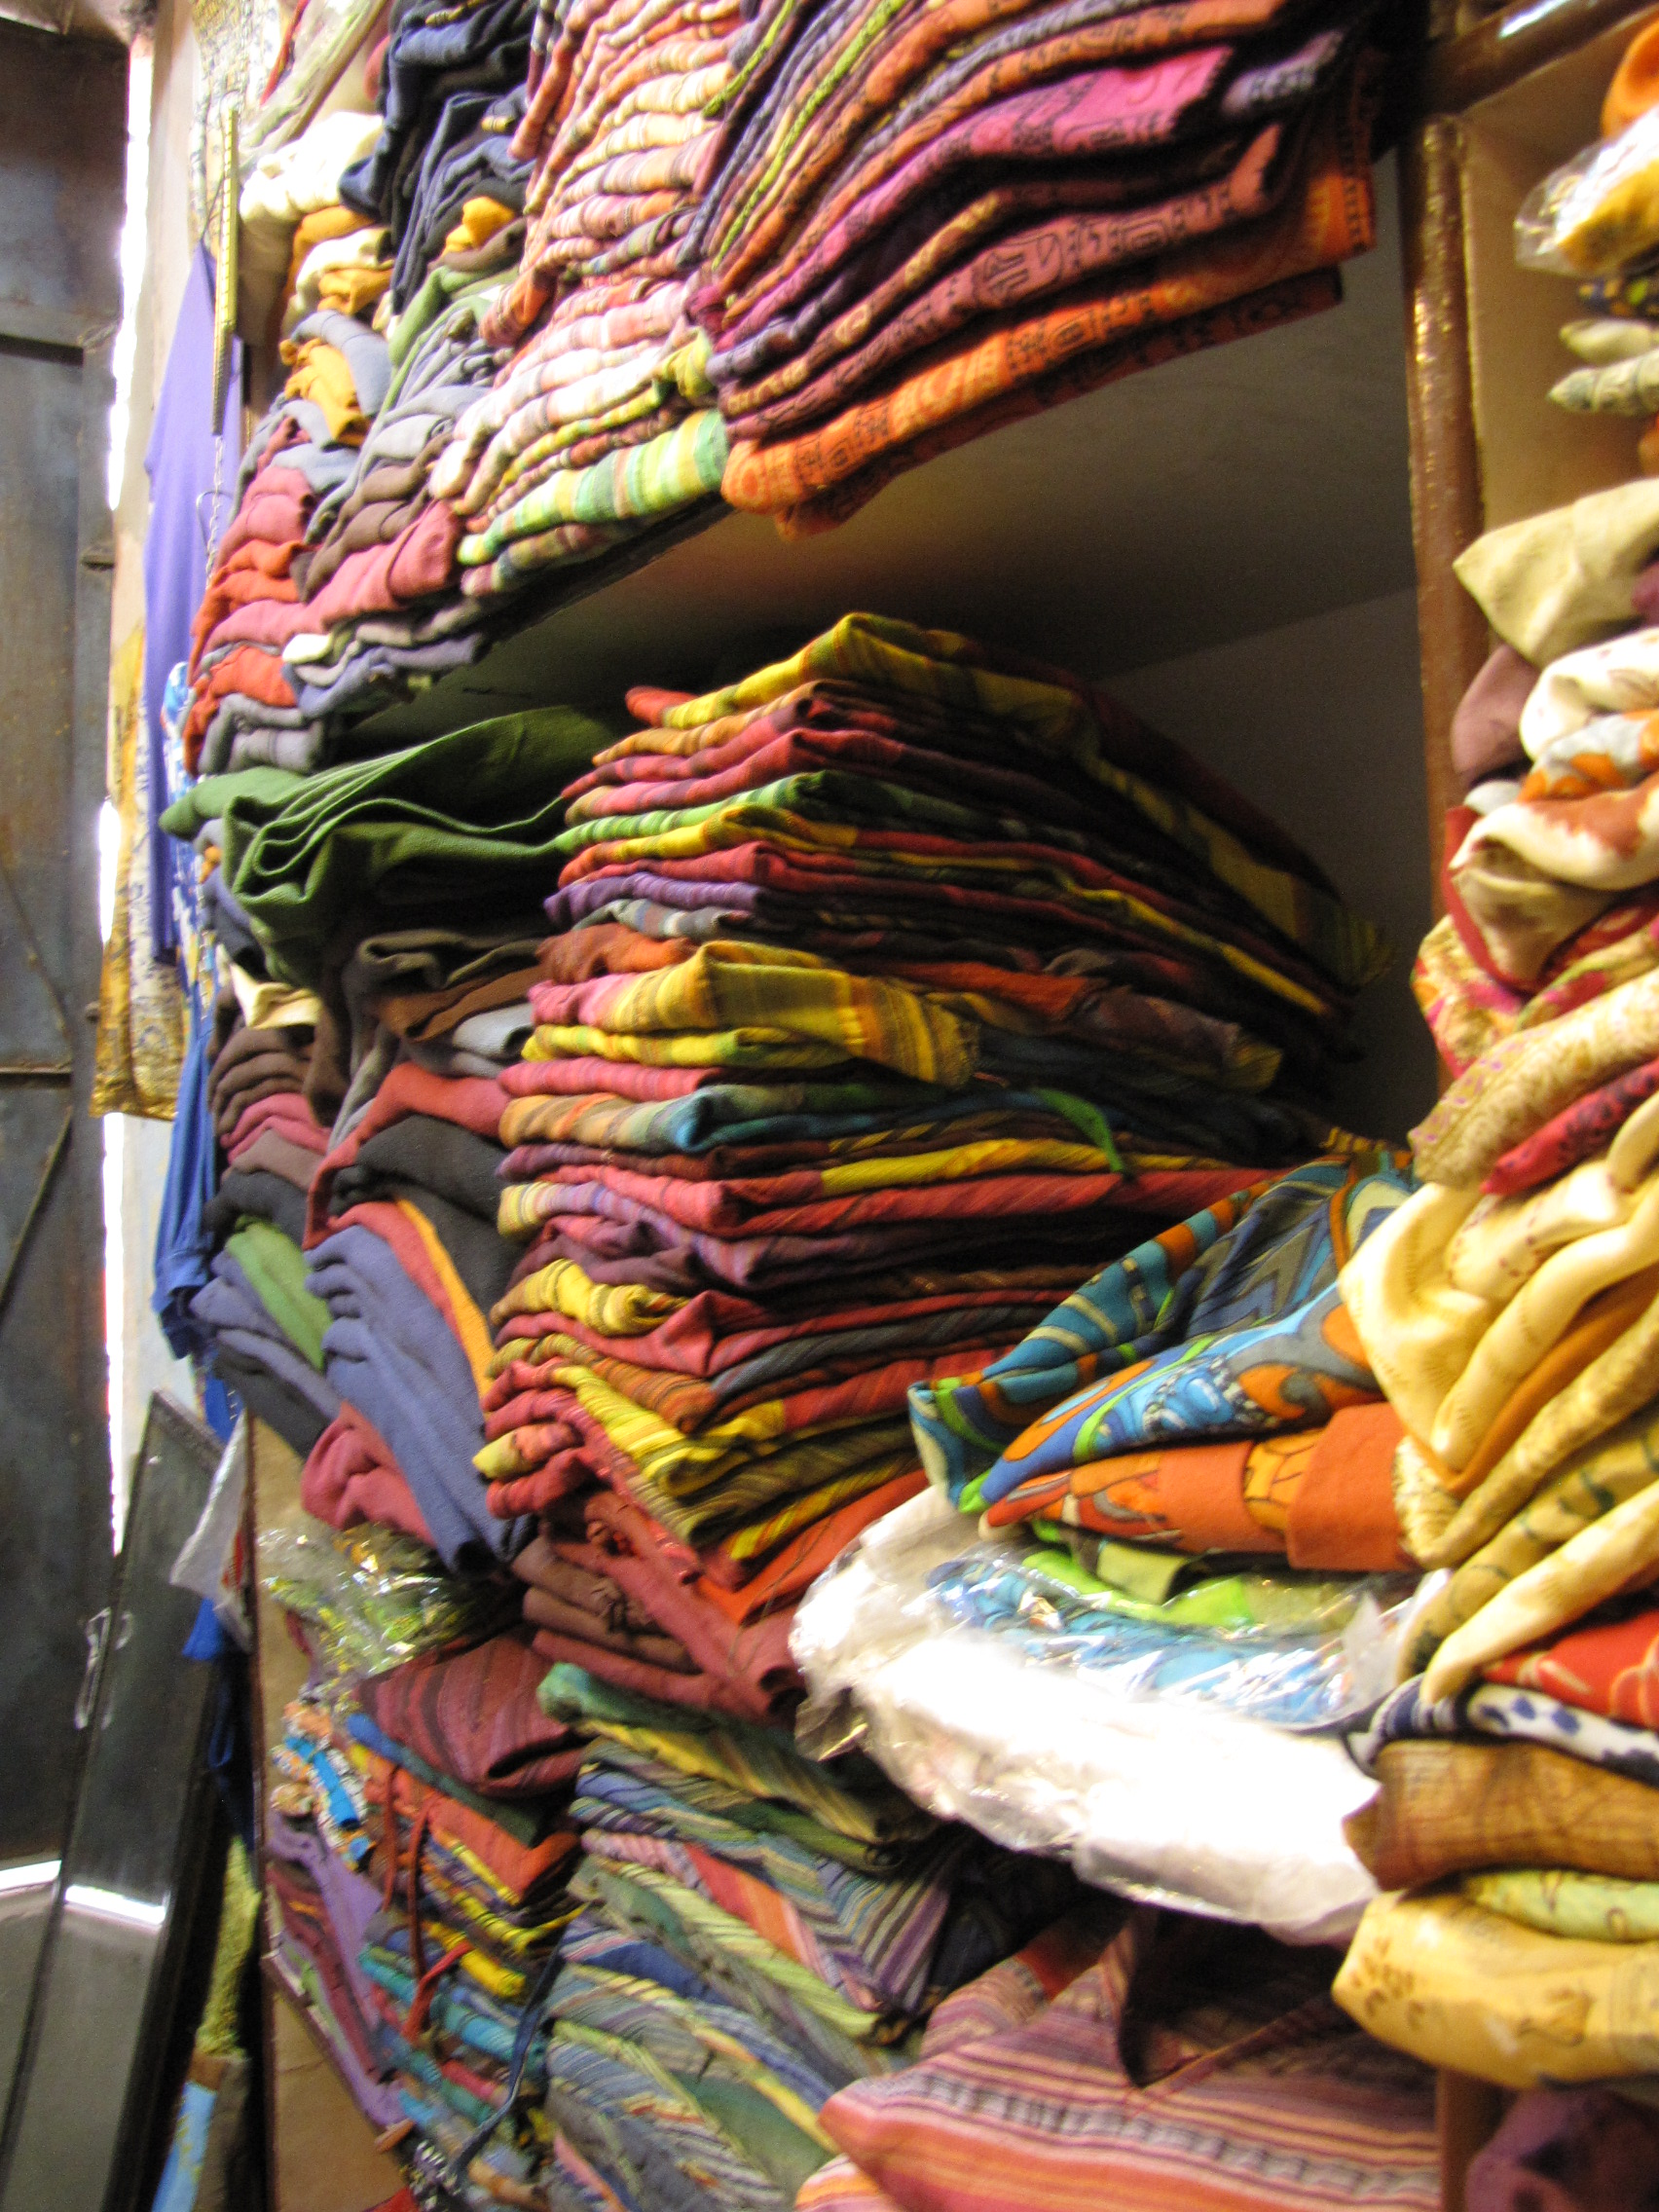 File:Clothes shop in Paharganj 02 (Friar\u0027s Balsam Flickr).jpg